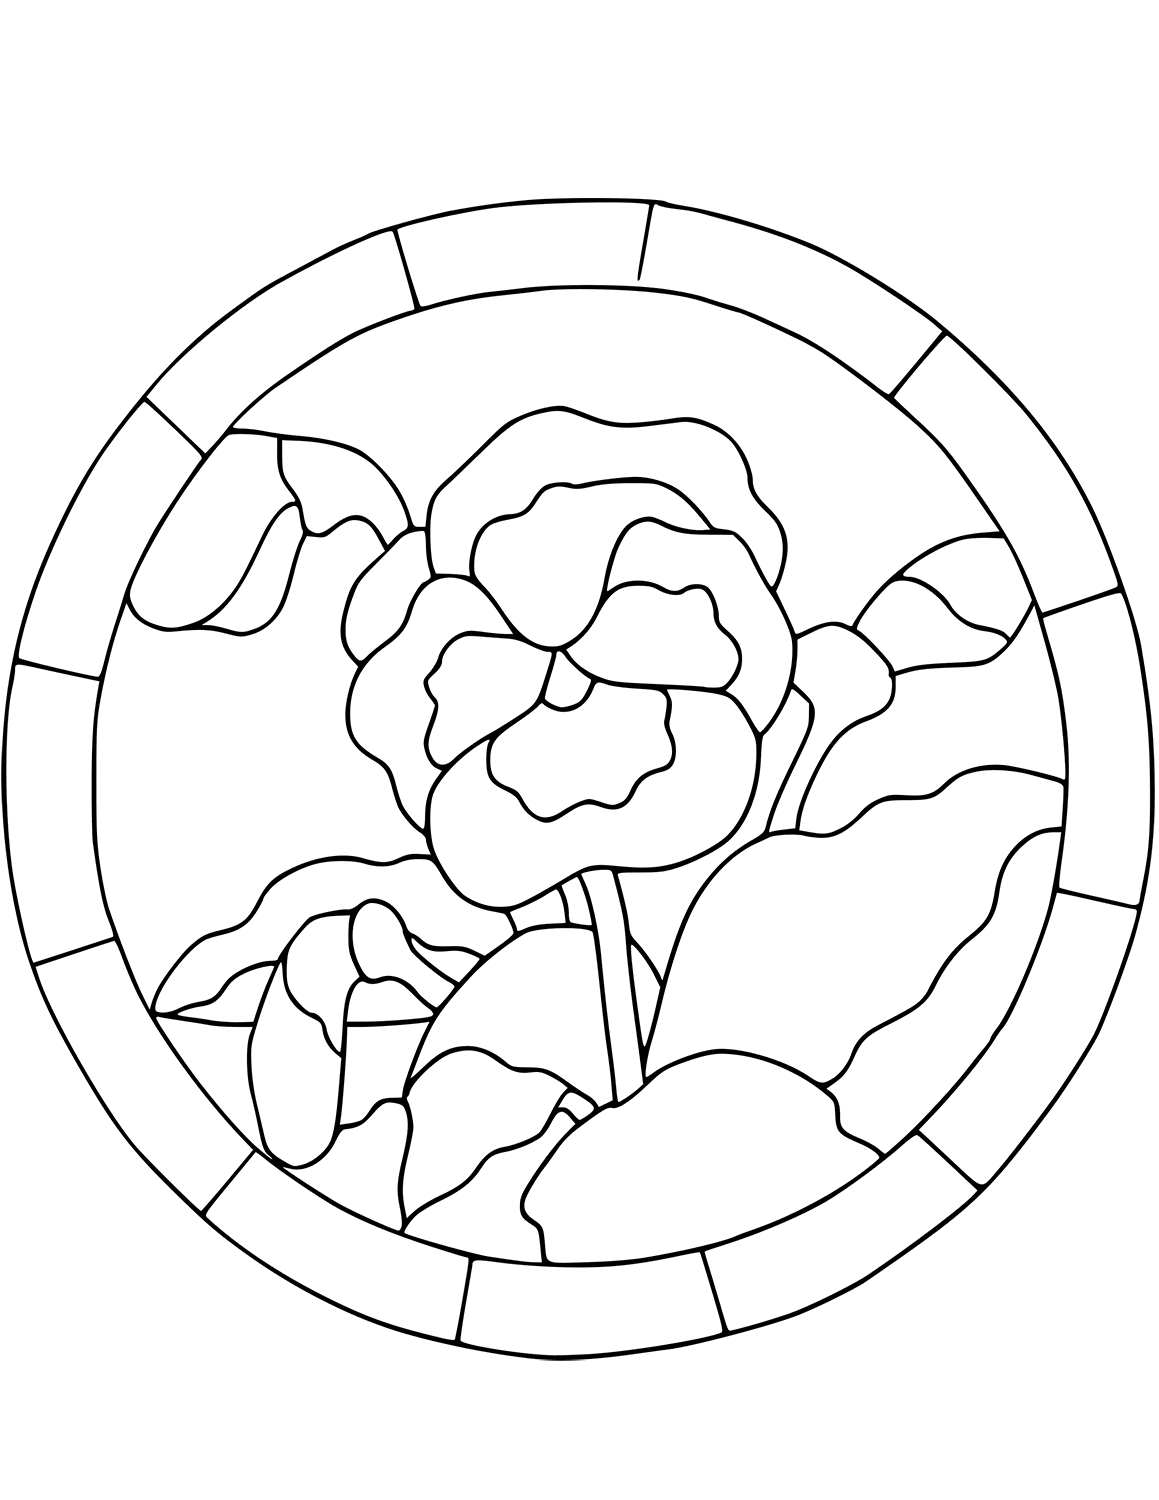 Pansy Mosiac Coloring Pages